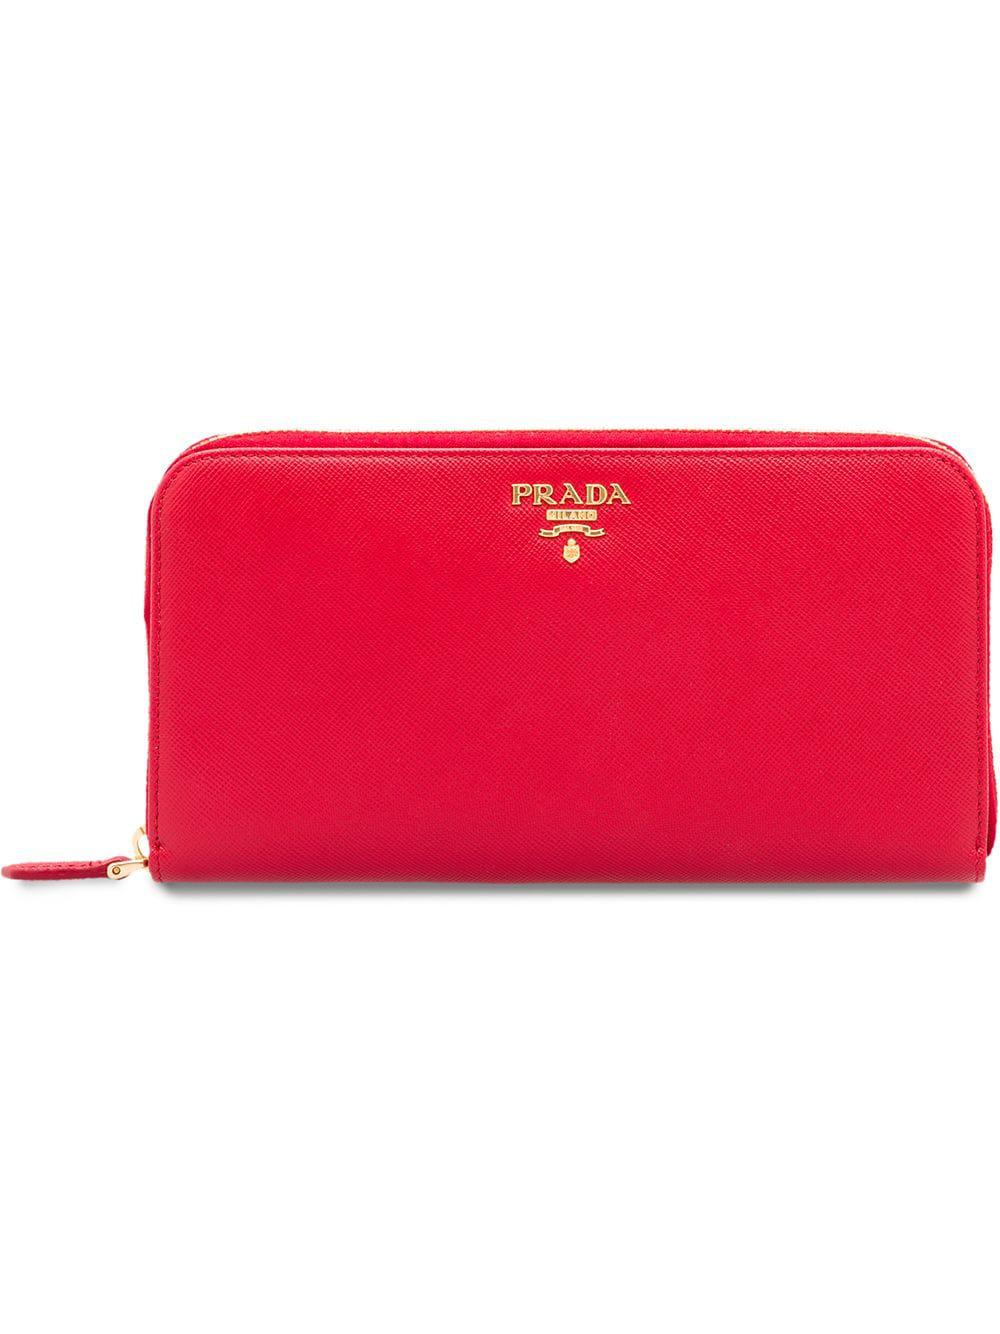 03d5e715cb56 Prada Saffiano Large Zip-Around Travel Wallet, Red (Fuoco) | ModeSens